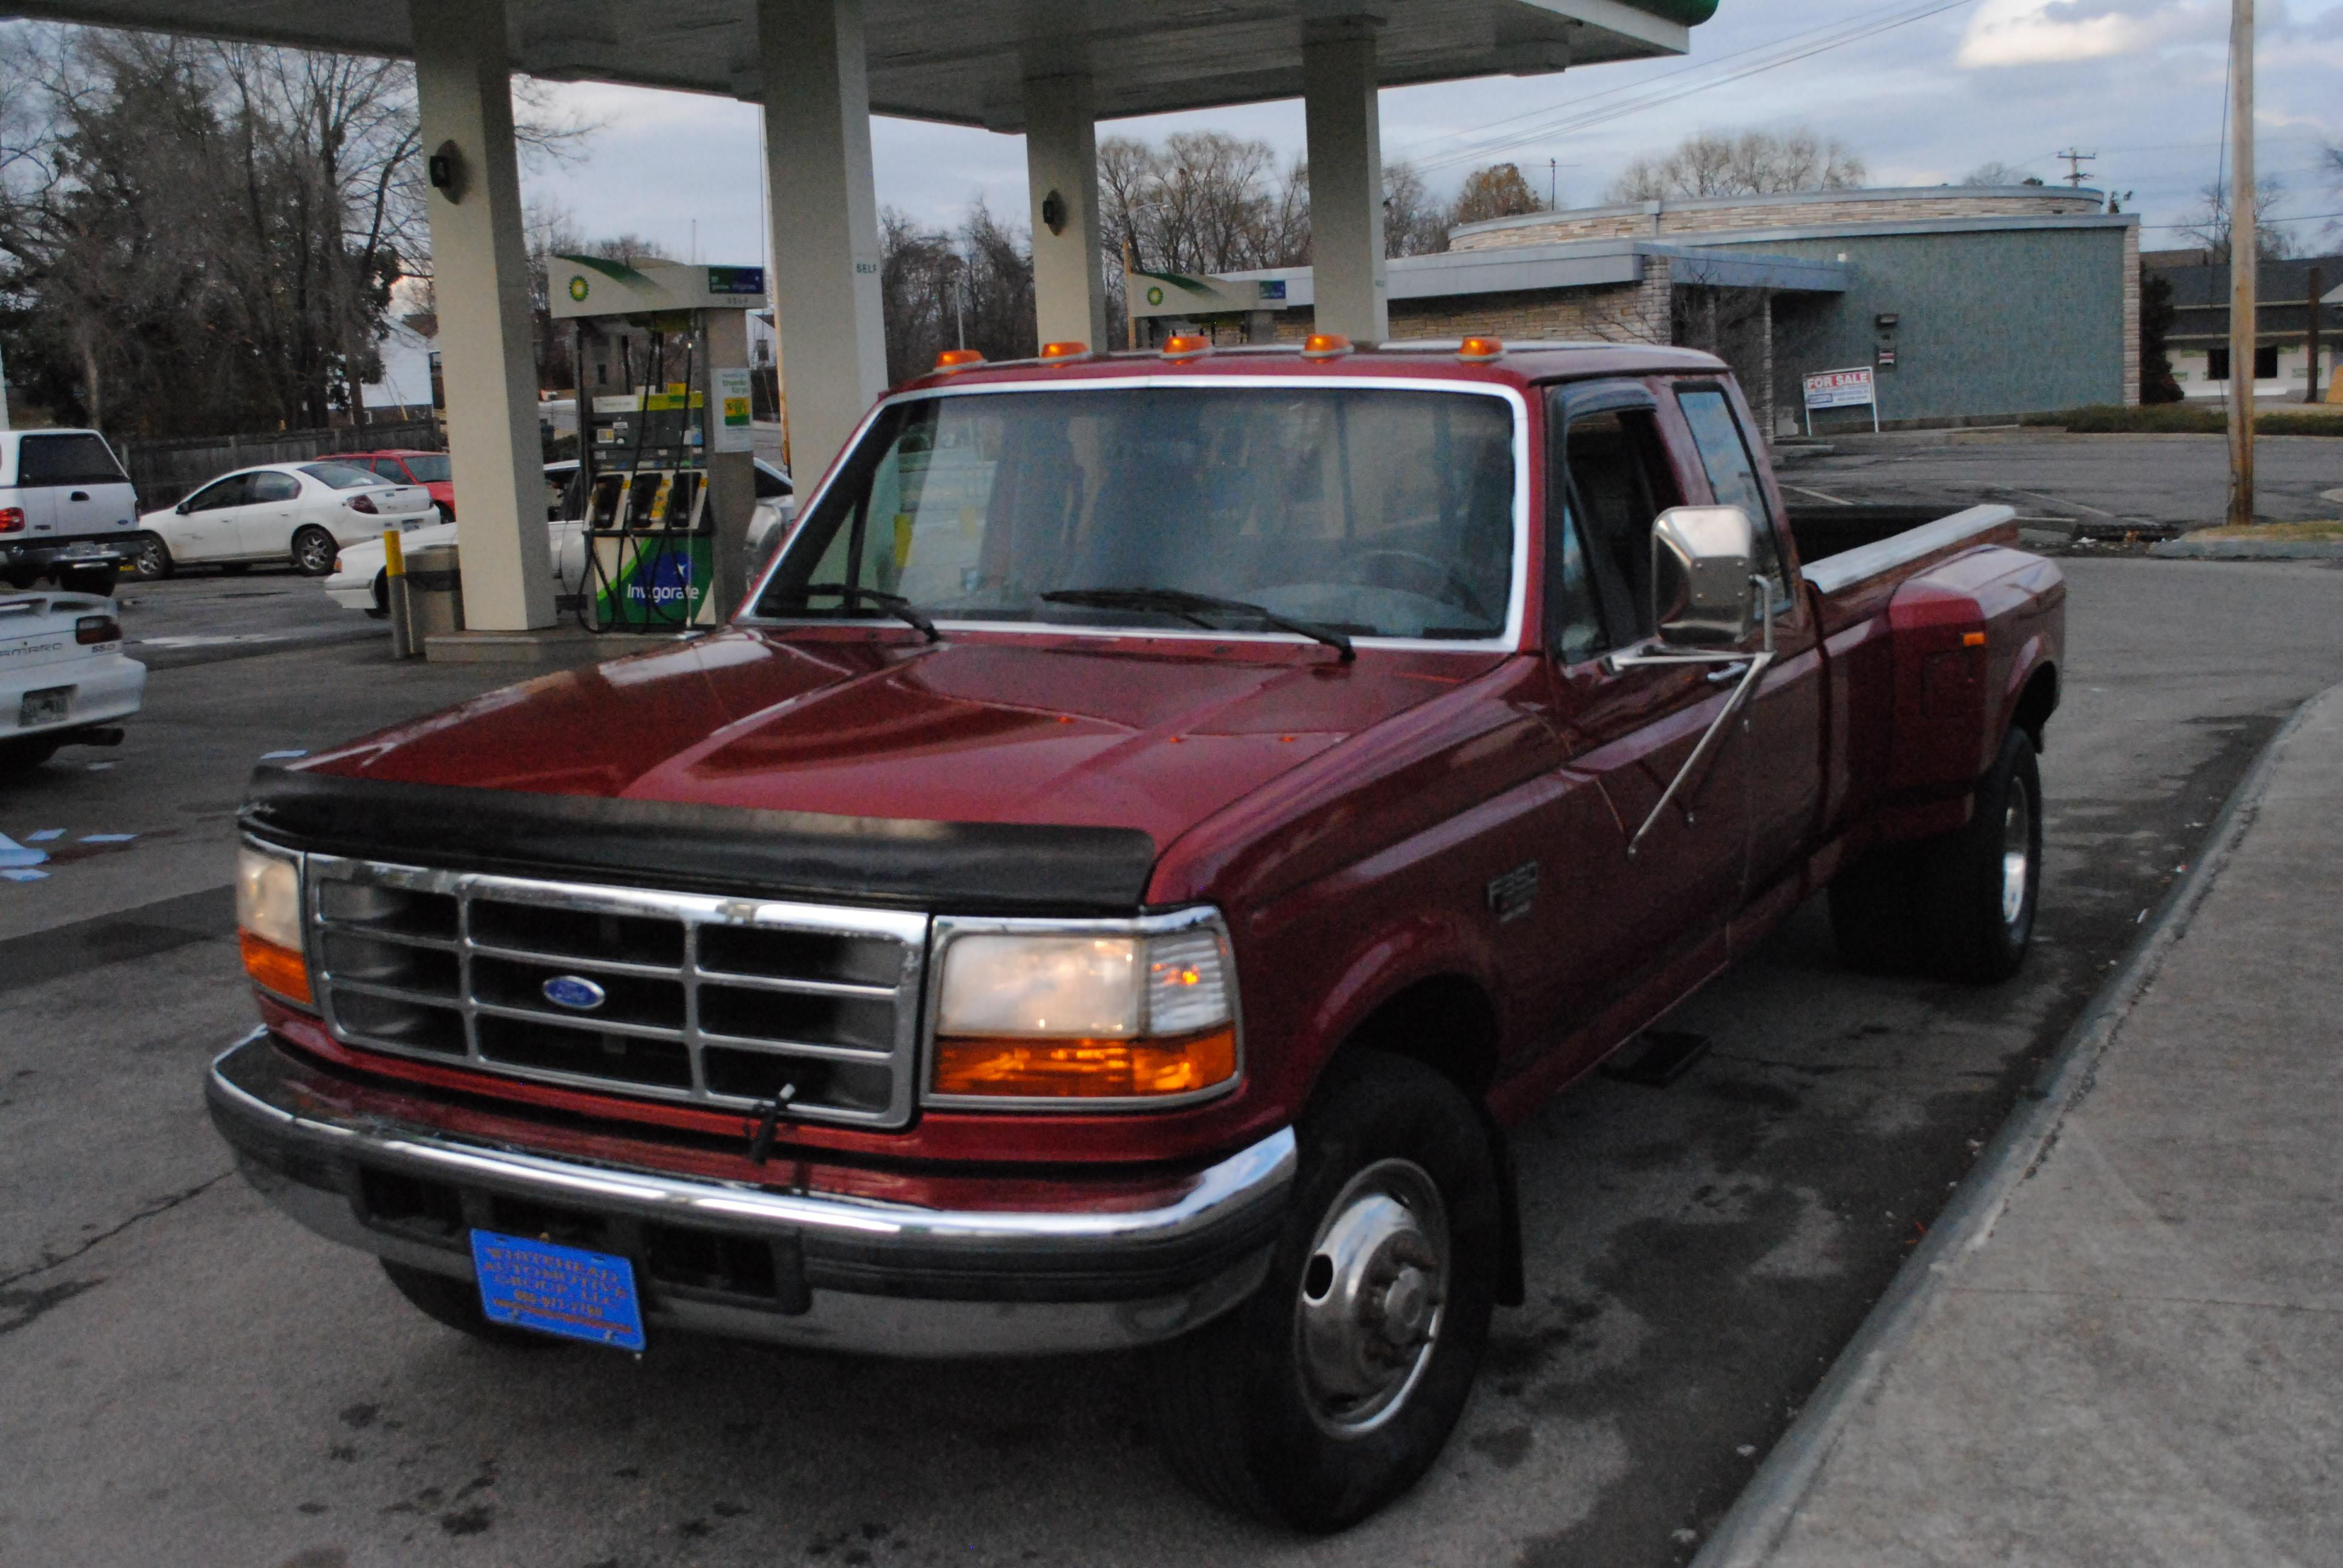 mymistress 1993 Ford F350 Super Cab Specs, Photos, Modification Info at CarDomain